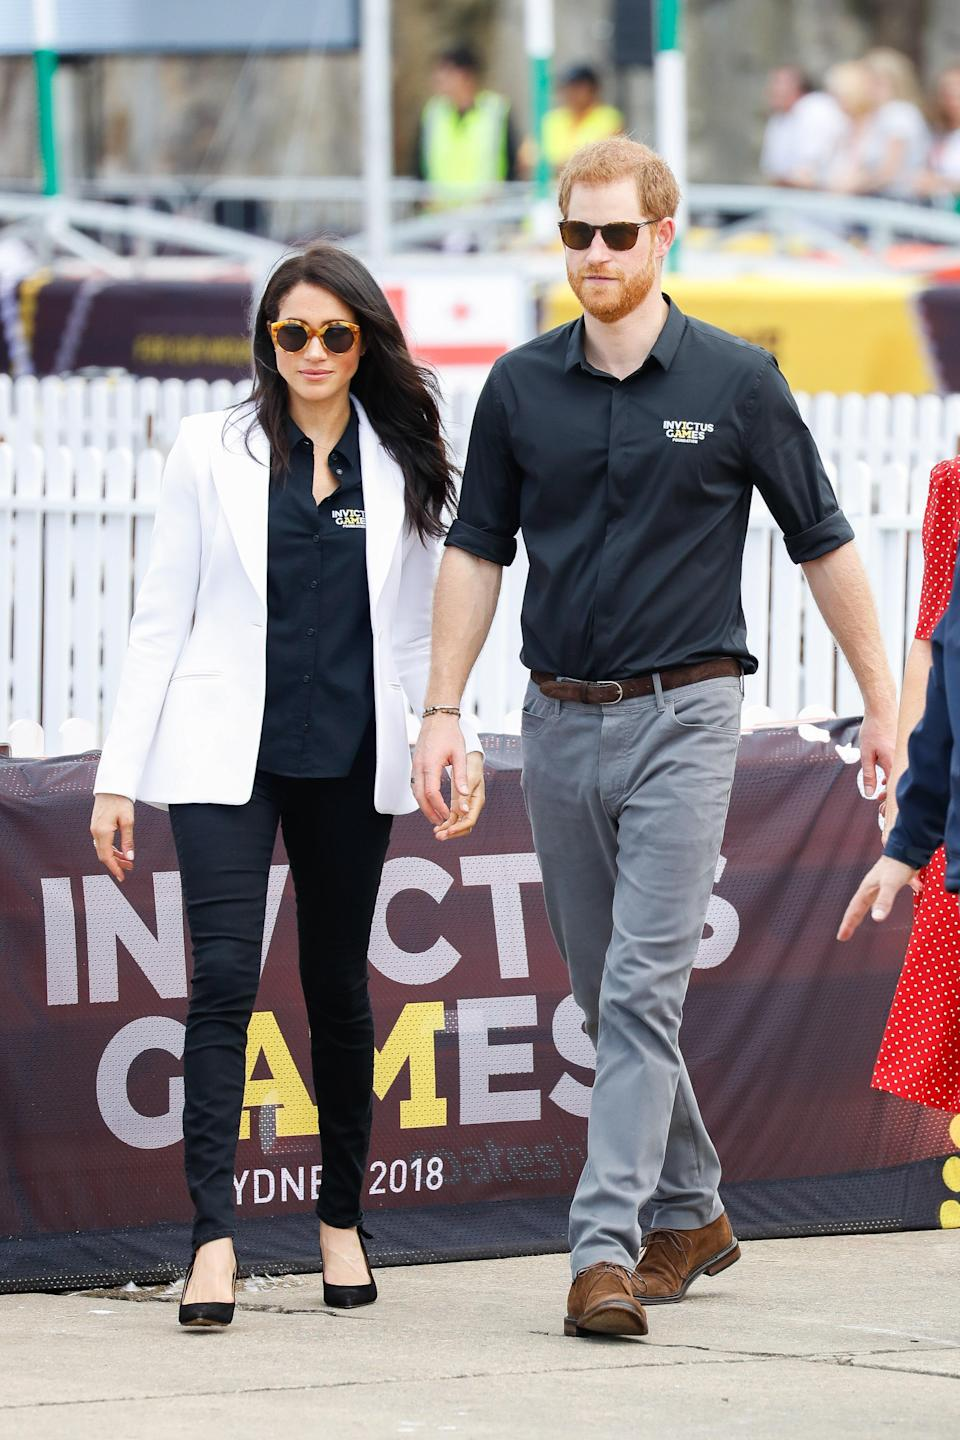 Meghan Markle wearing Mother denim at the 2018 Invictus Games in Sydney